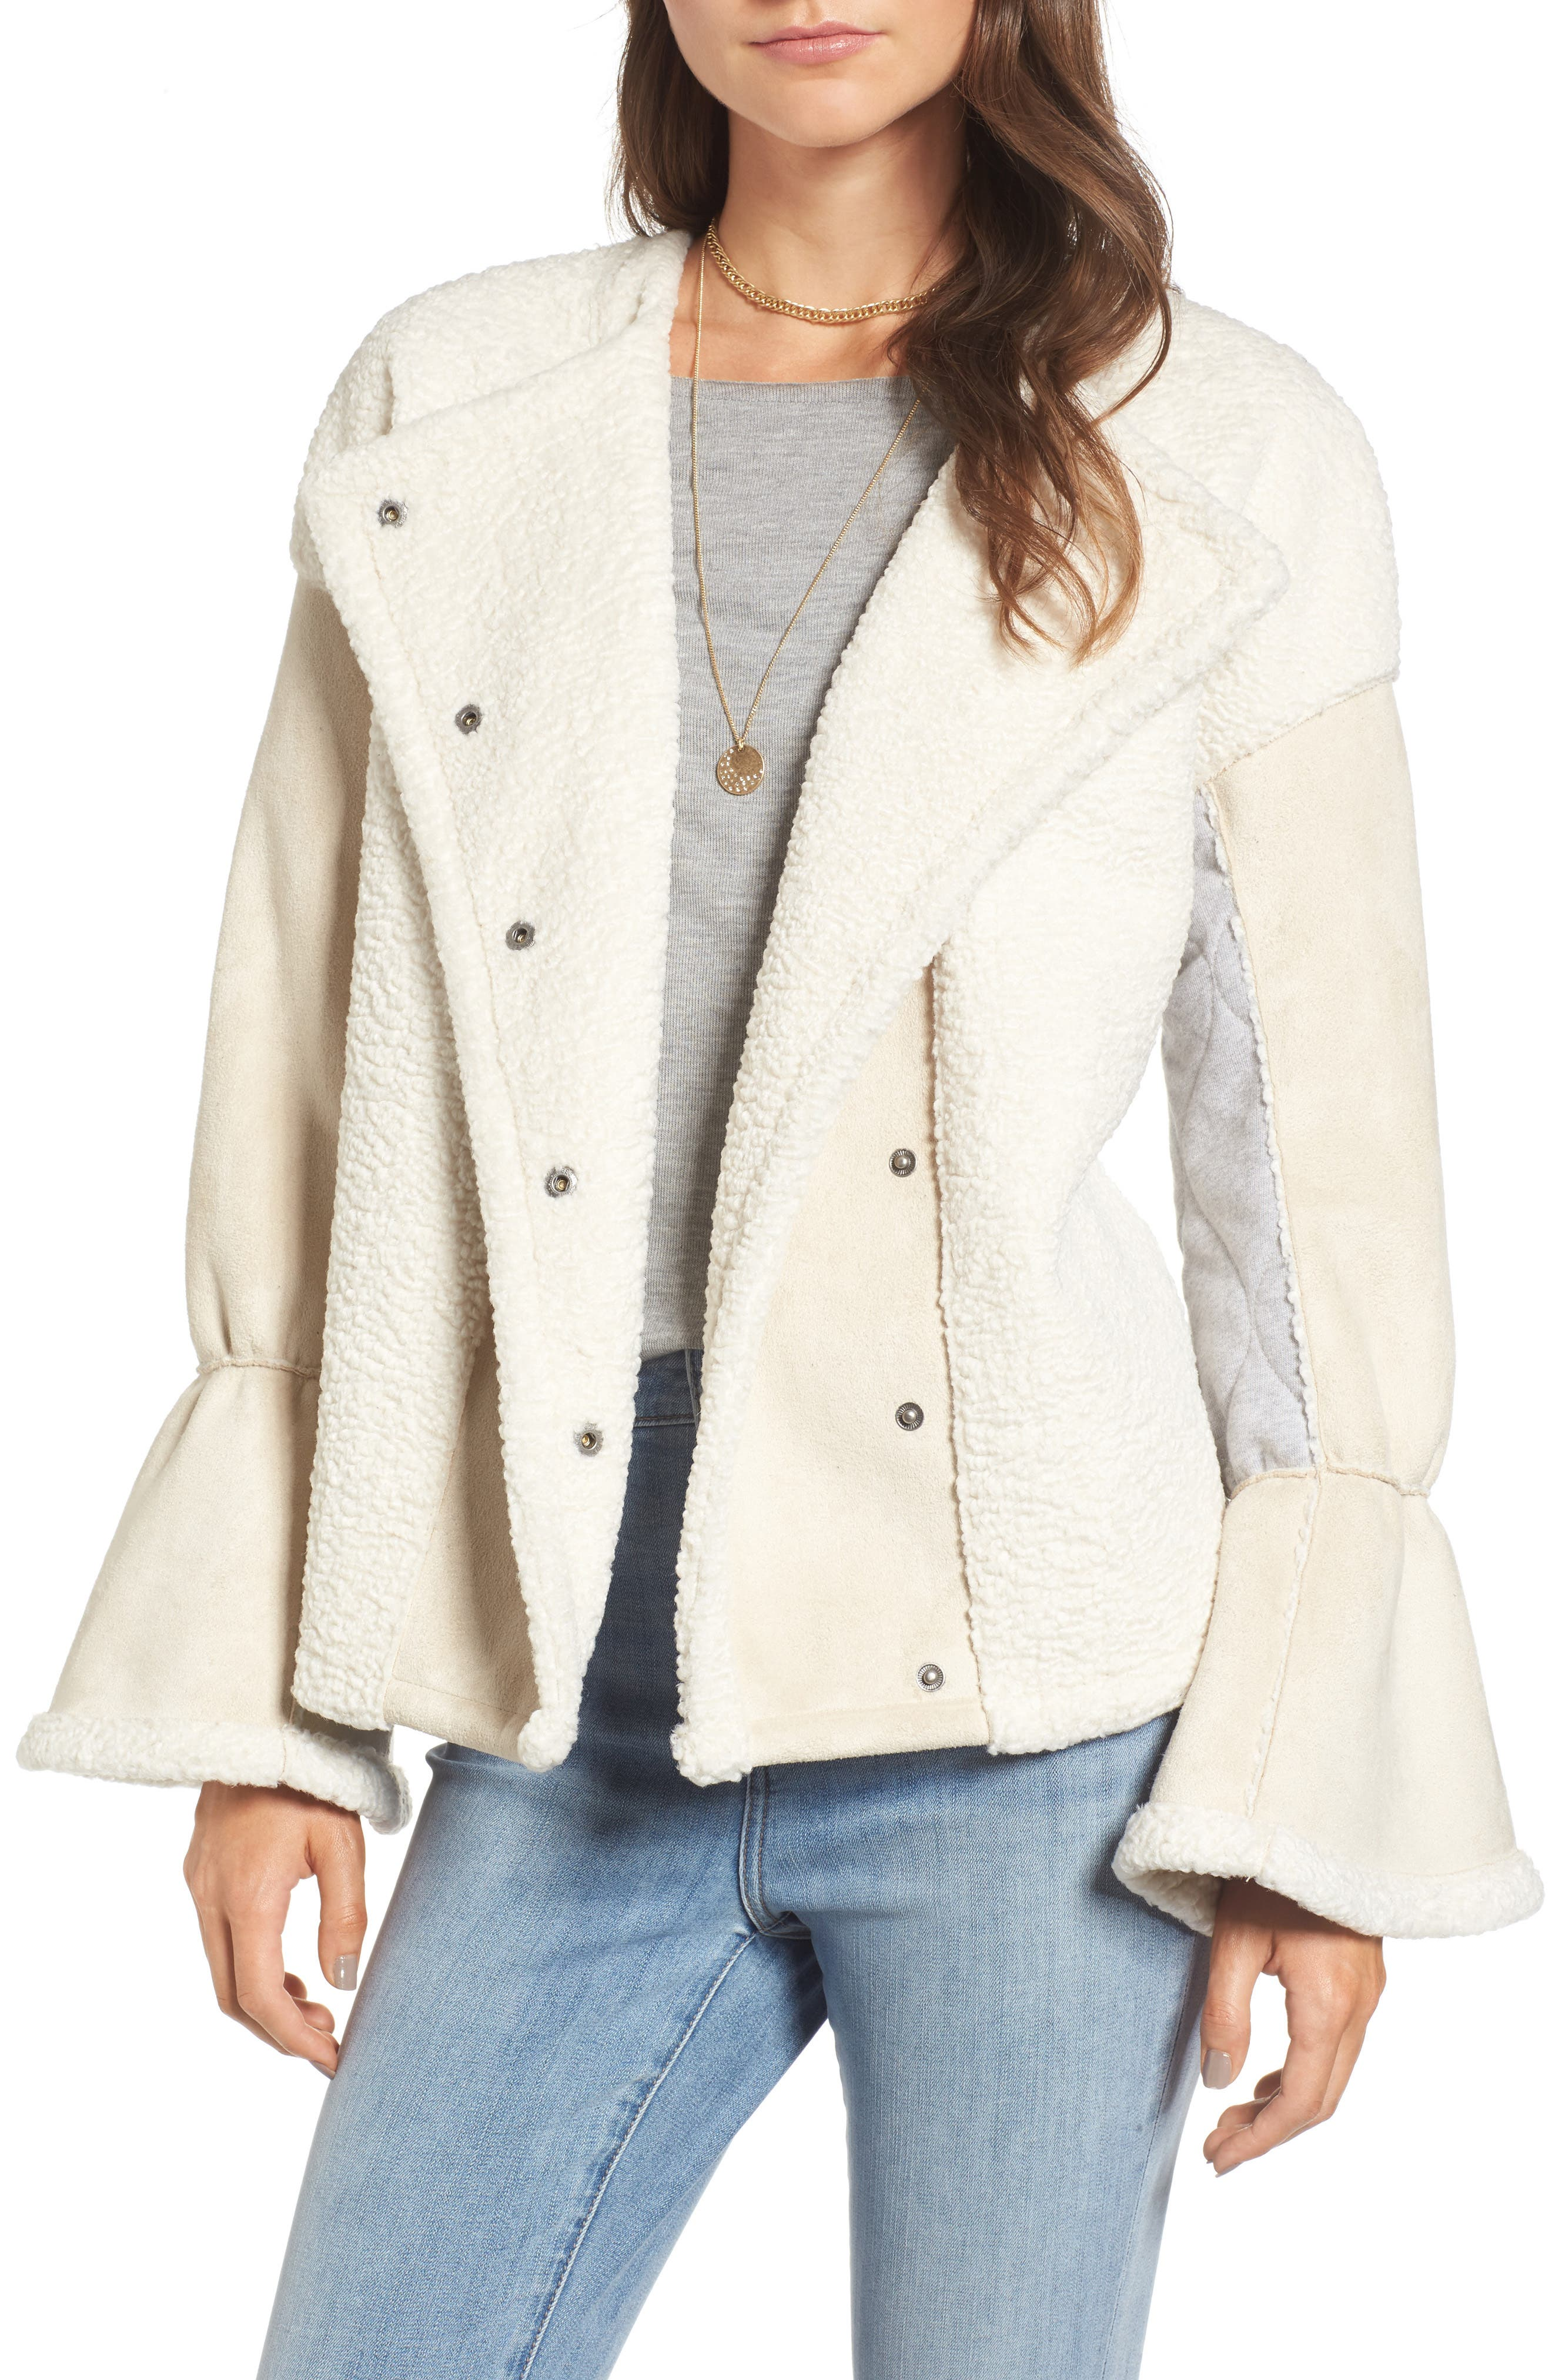 x Something Navy Bell Sleeve Faux Shearling Jacket,                             Main thumbnail 1, color,                             900